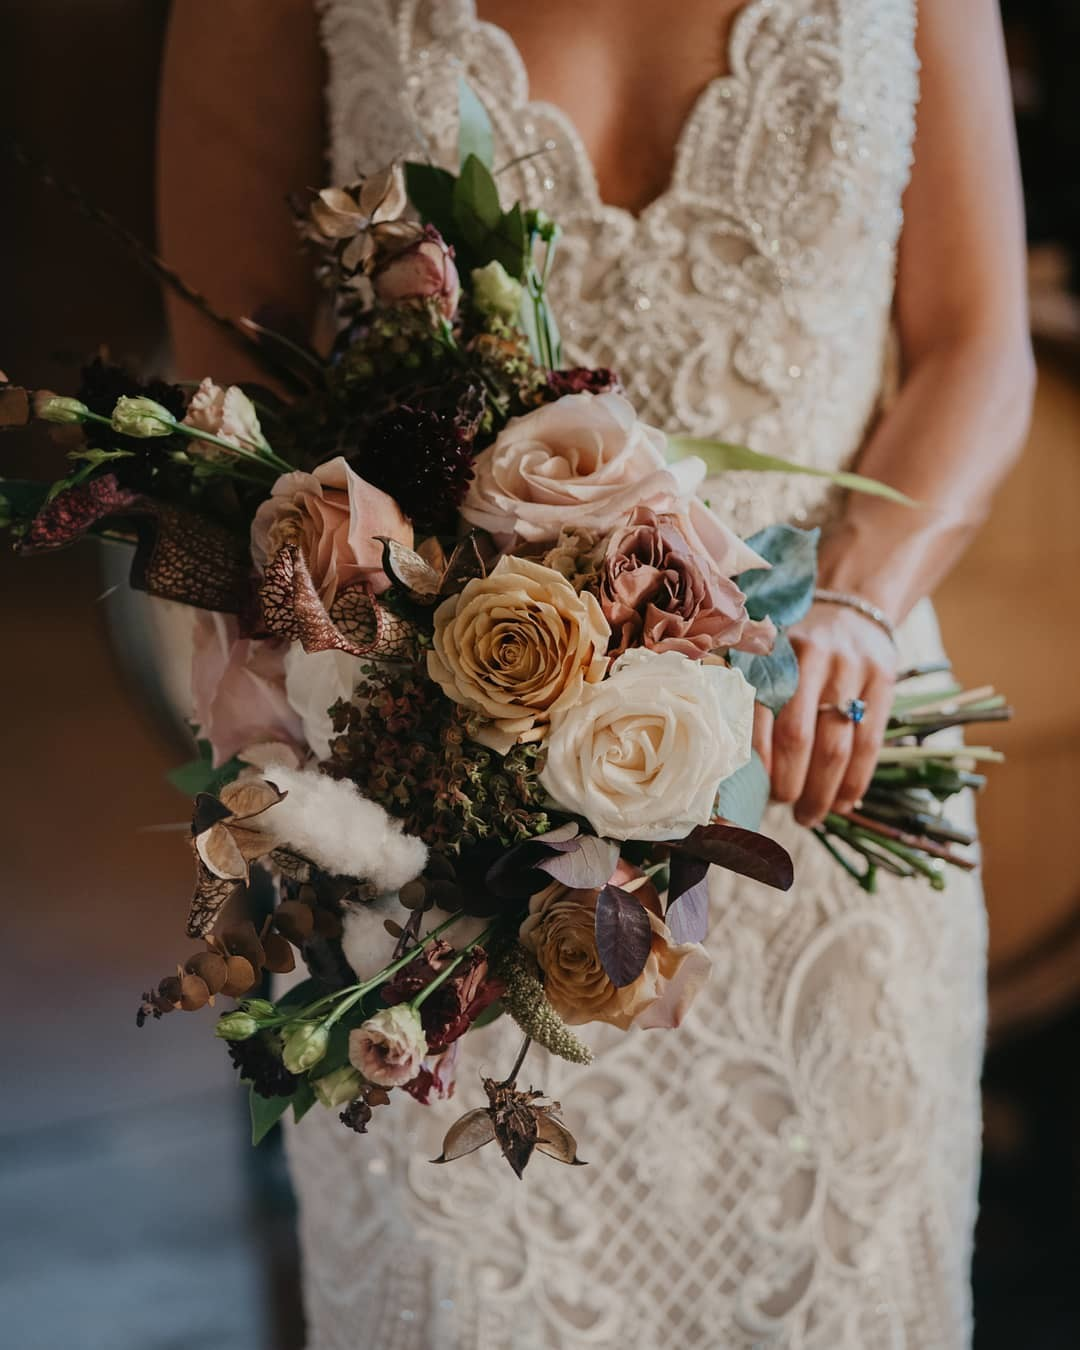 Maybe if we share a little fall wedding inspiration, sweater weather will come sooner 🍁🍂 What's your favorite thing about fall